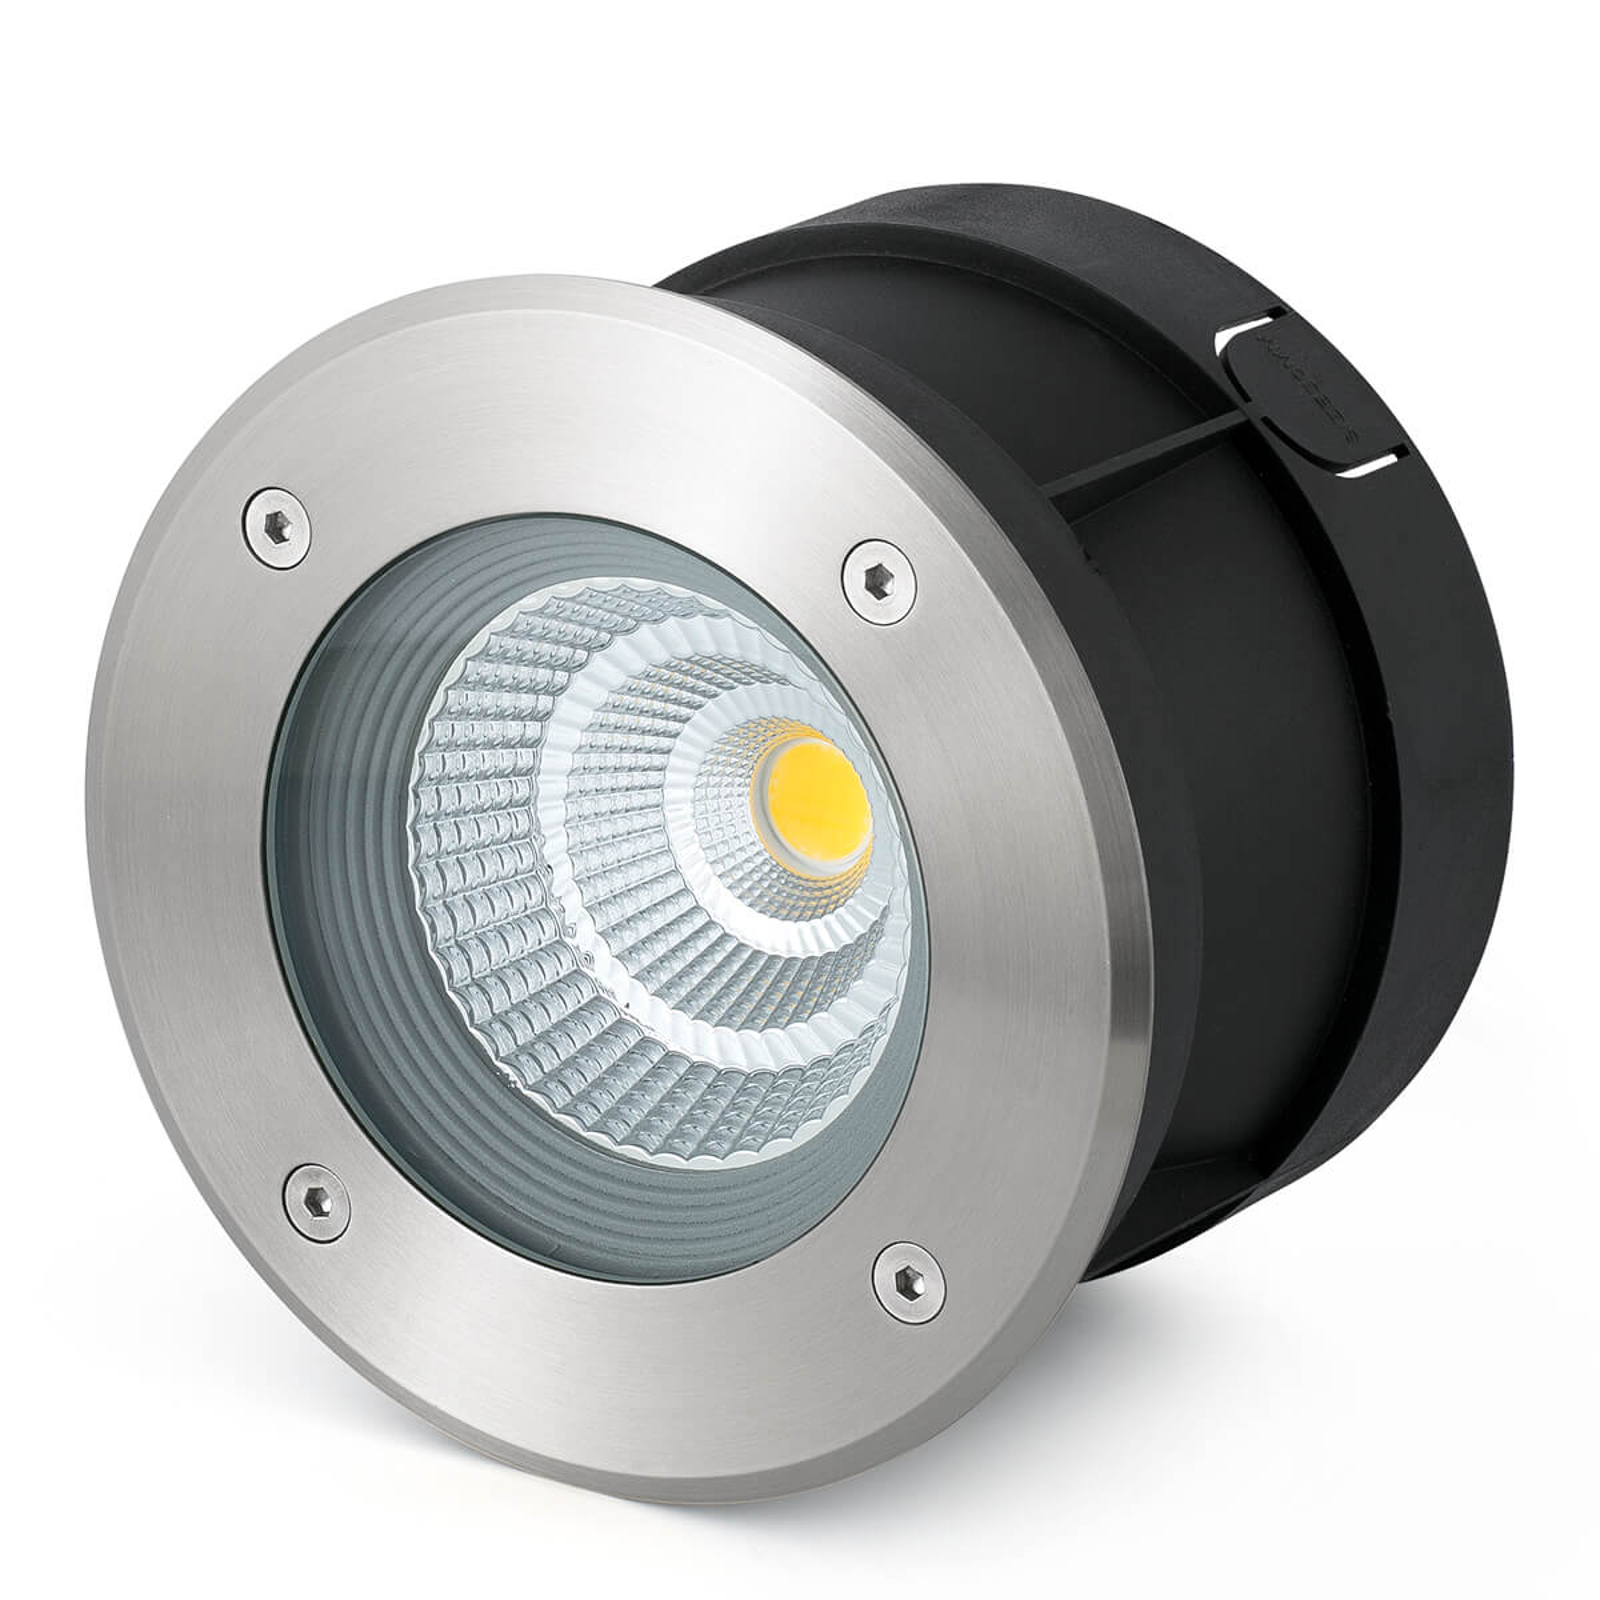 Spot encastrable dans le sol LED Suria-12, IP67